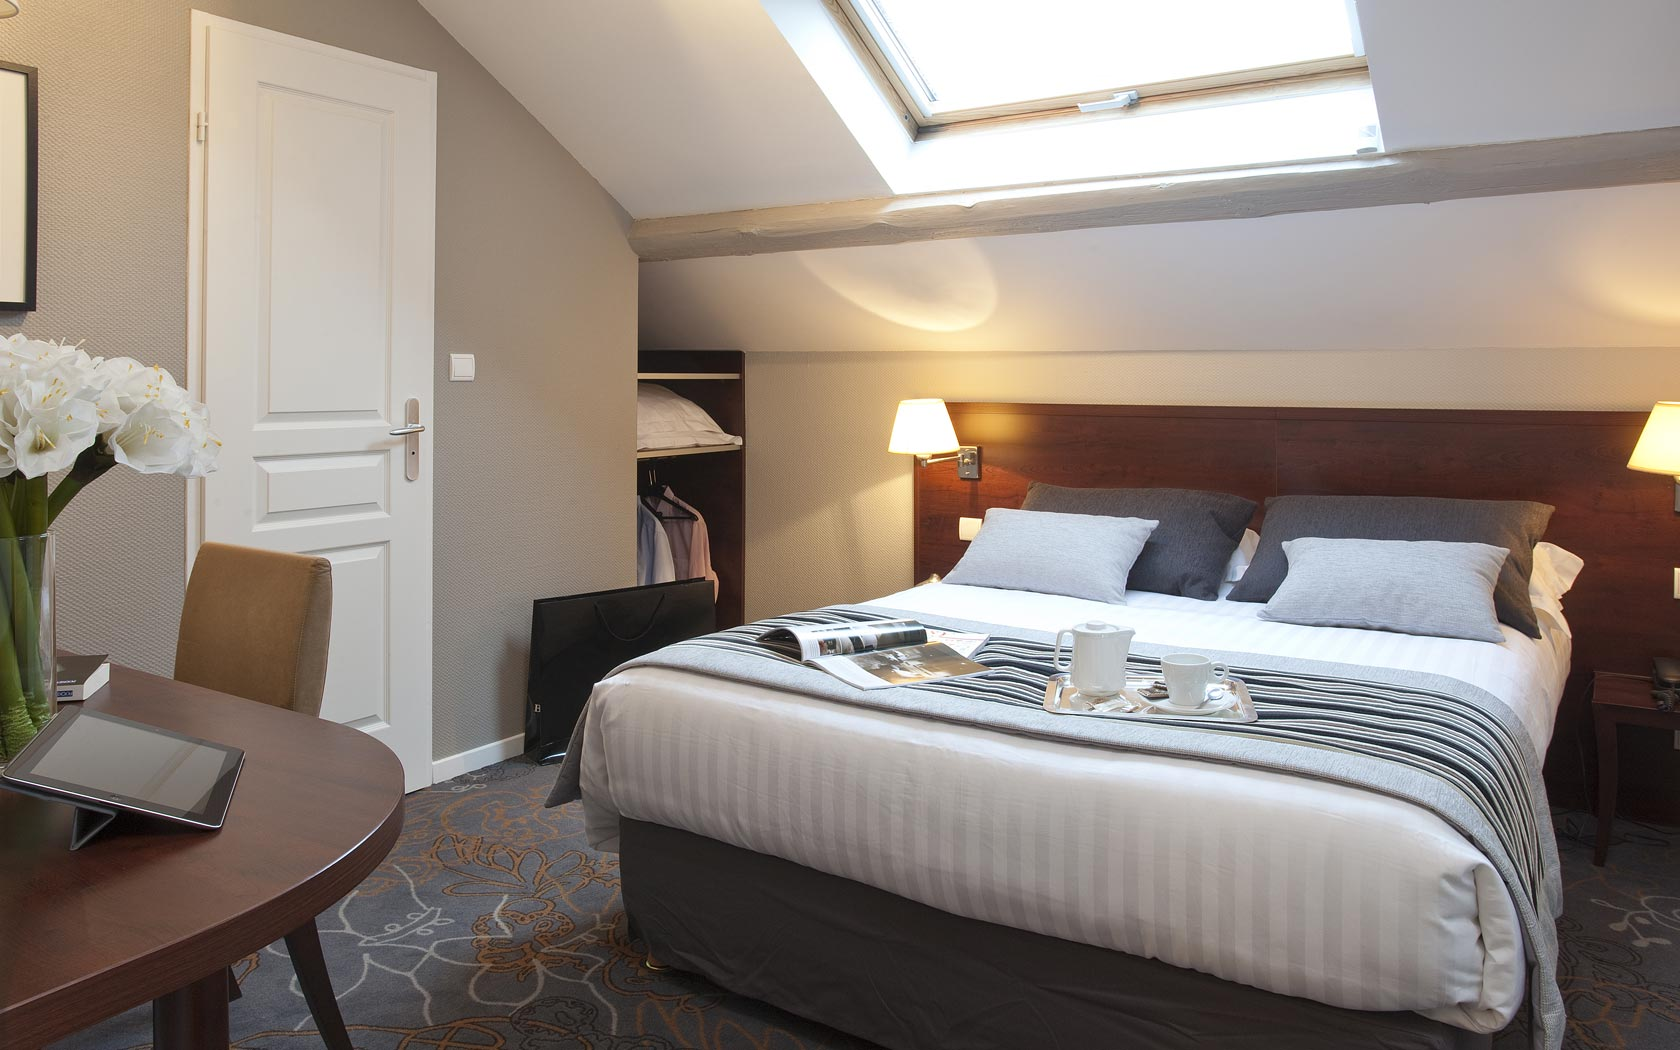 Chambre Annecy Chambres Hôtel Annecy Allobroges